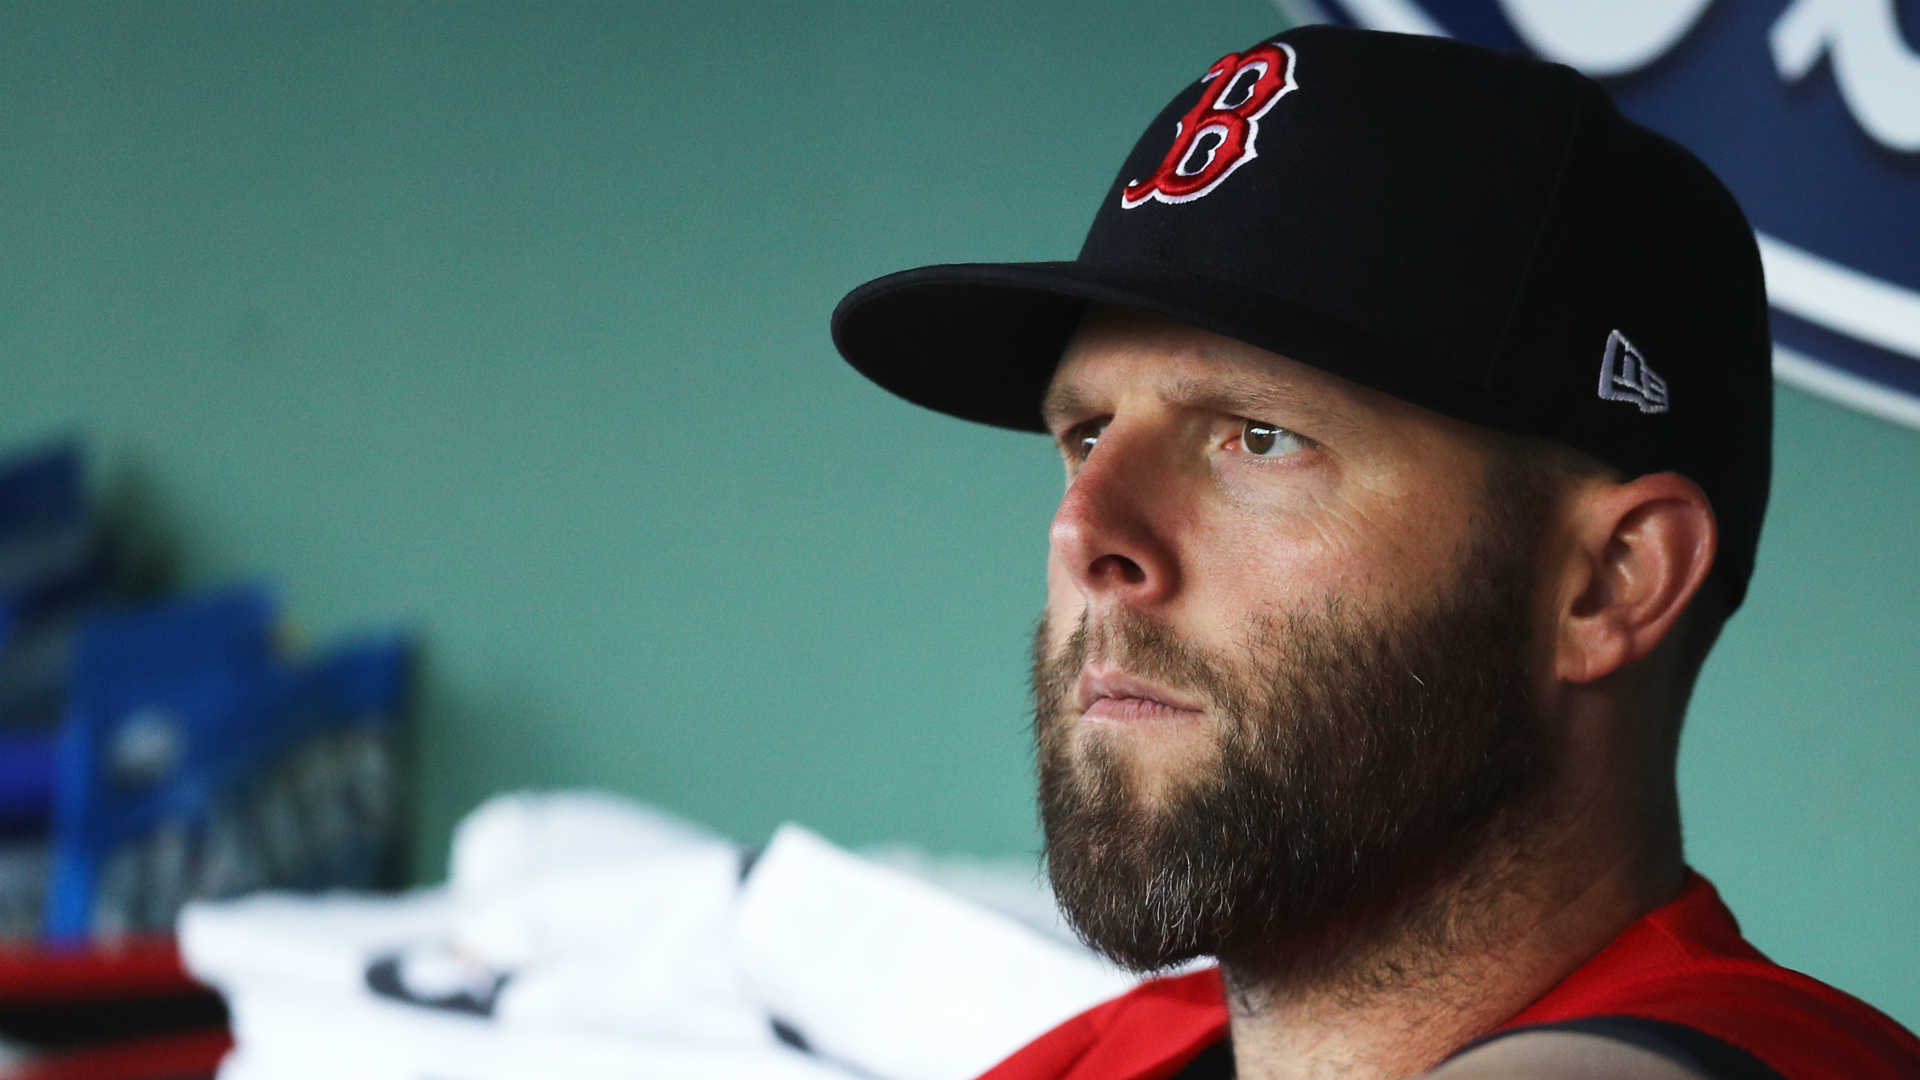 Red Sox's Dustin Pedroia 'not sure' if he'll ever play again due to injury